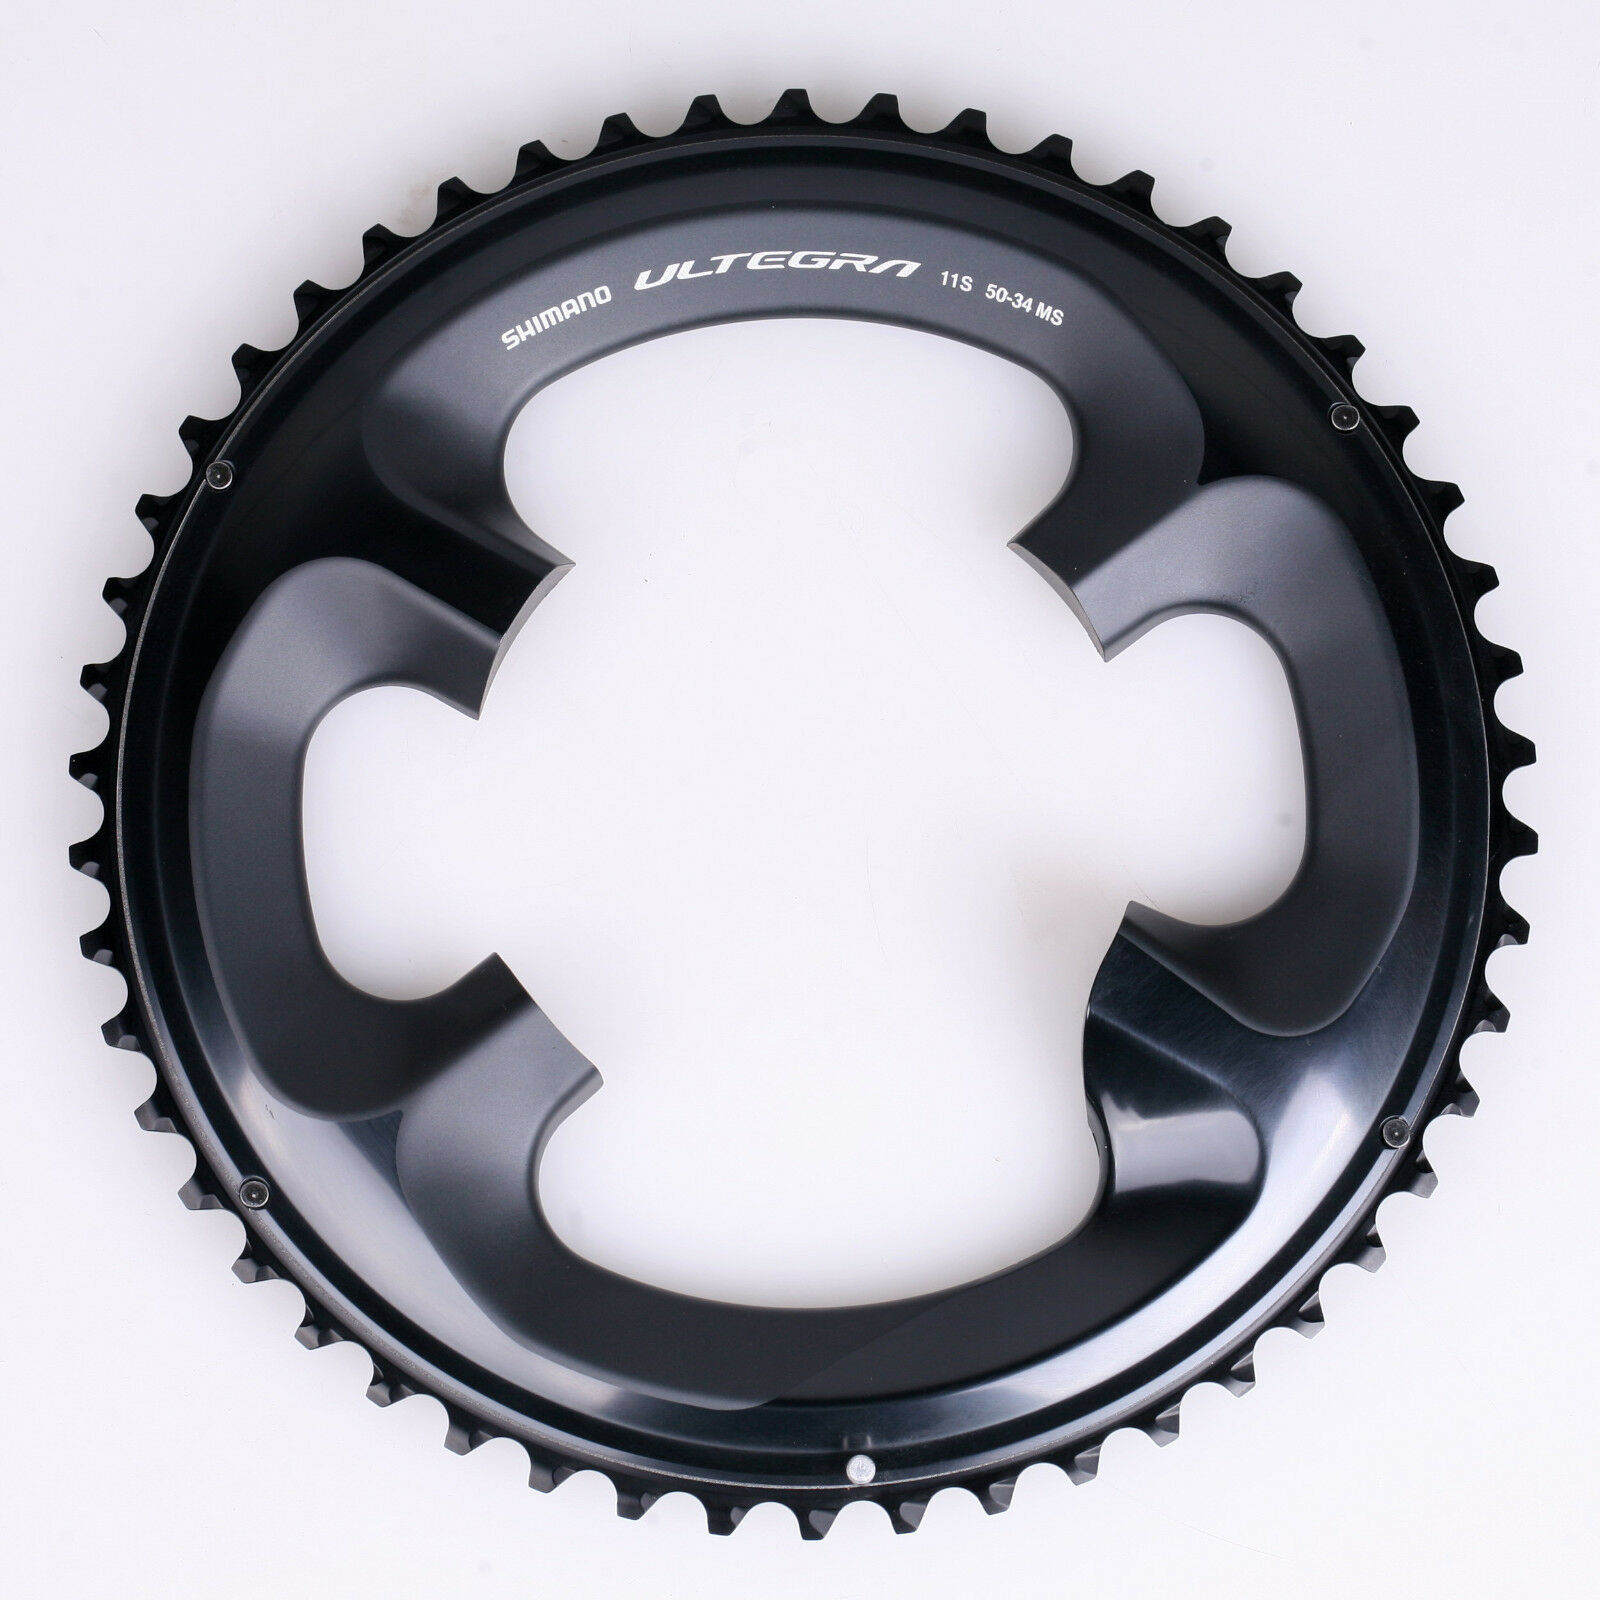 Shimano Ultegra R8000 Chainring-Fit R9100; 9000 6800-53T 52T 50T